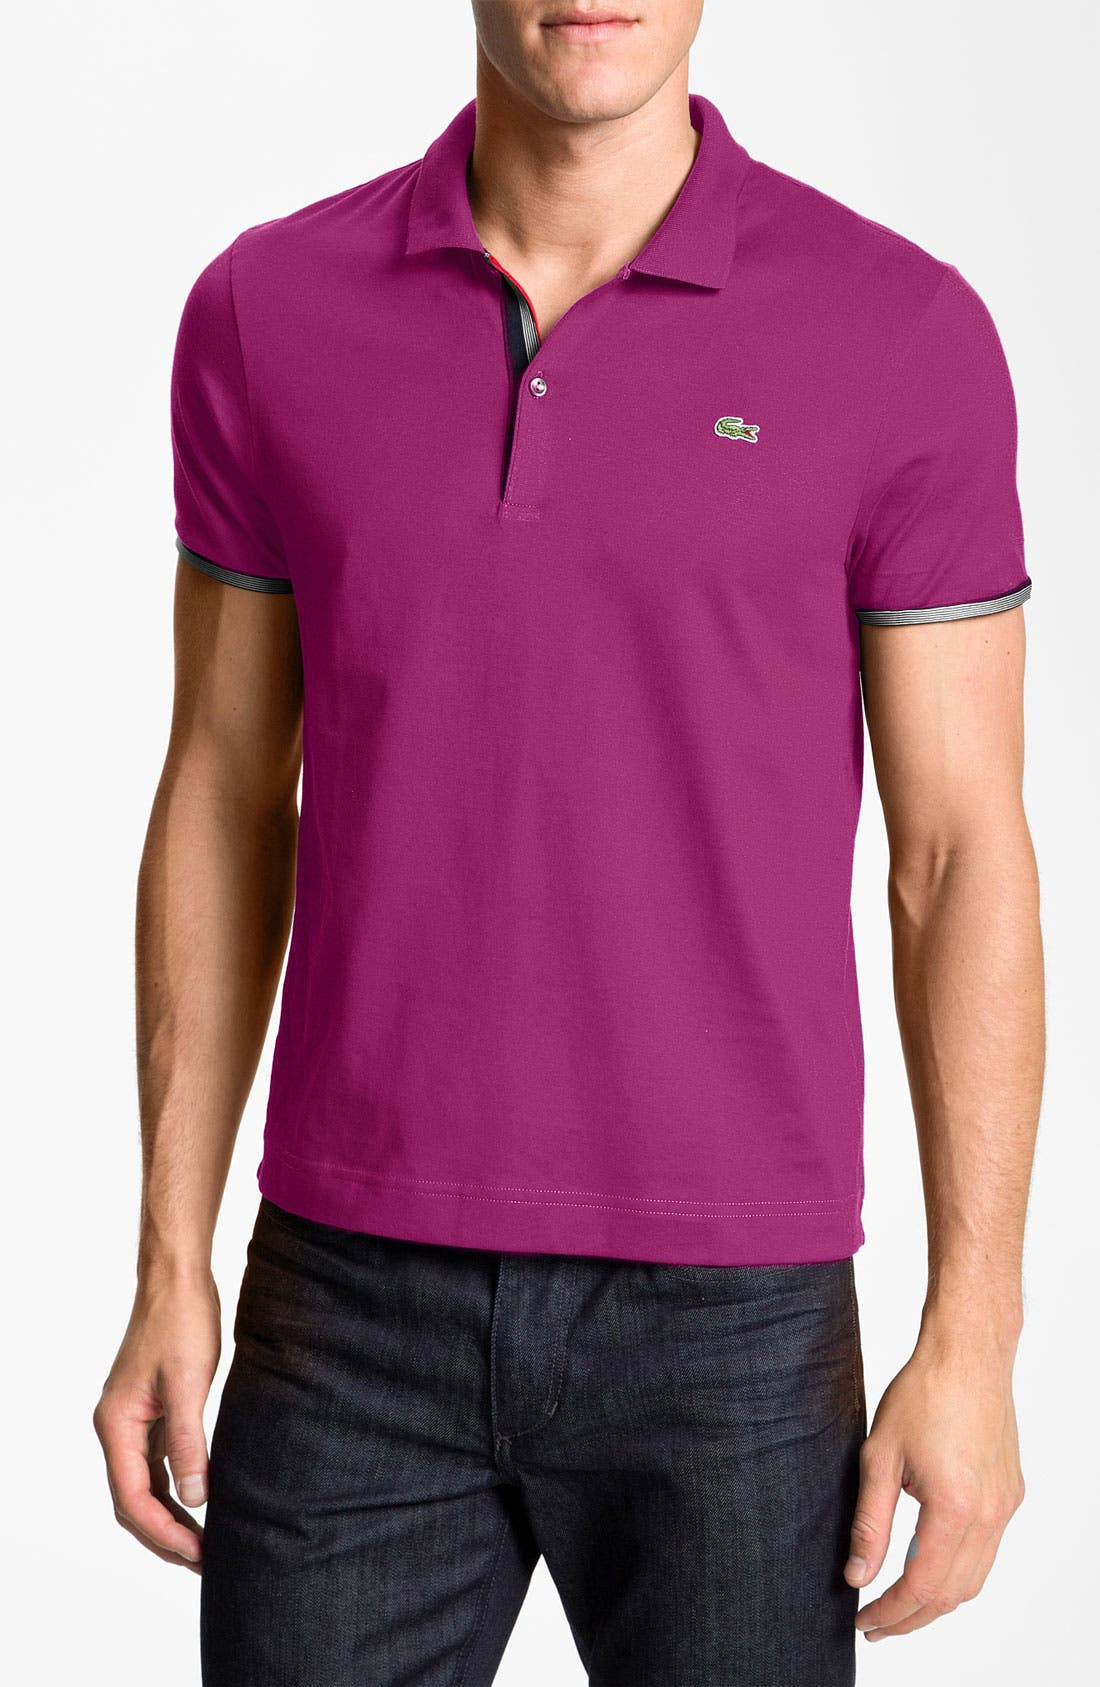 Alternate Image 1 Selected - Lacoste Trim Fit Jersey Polo